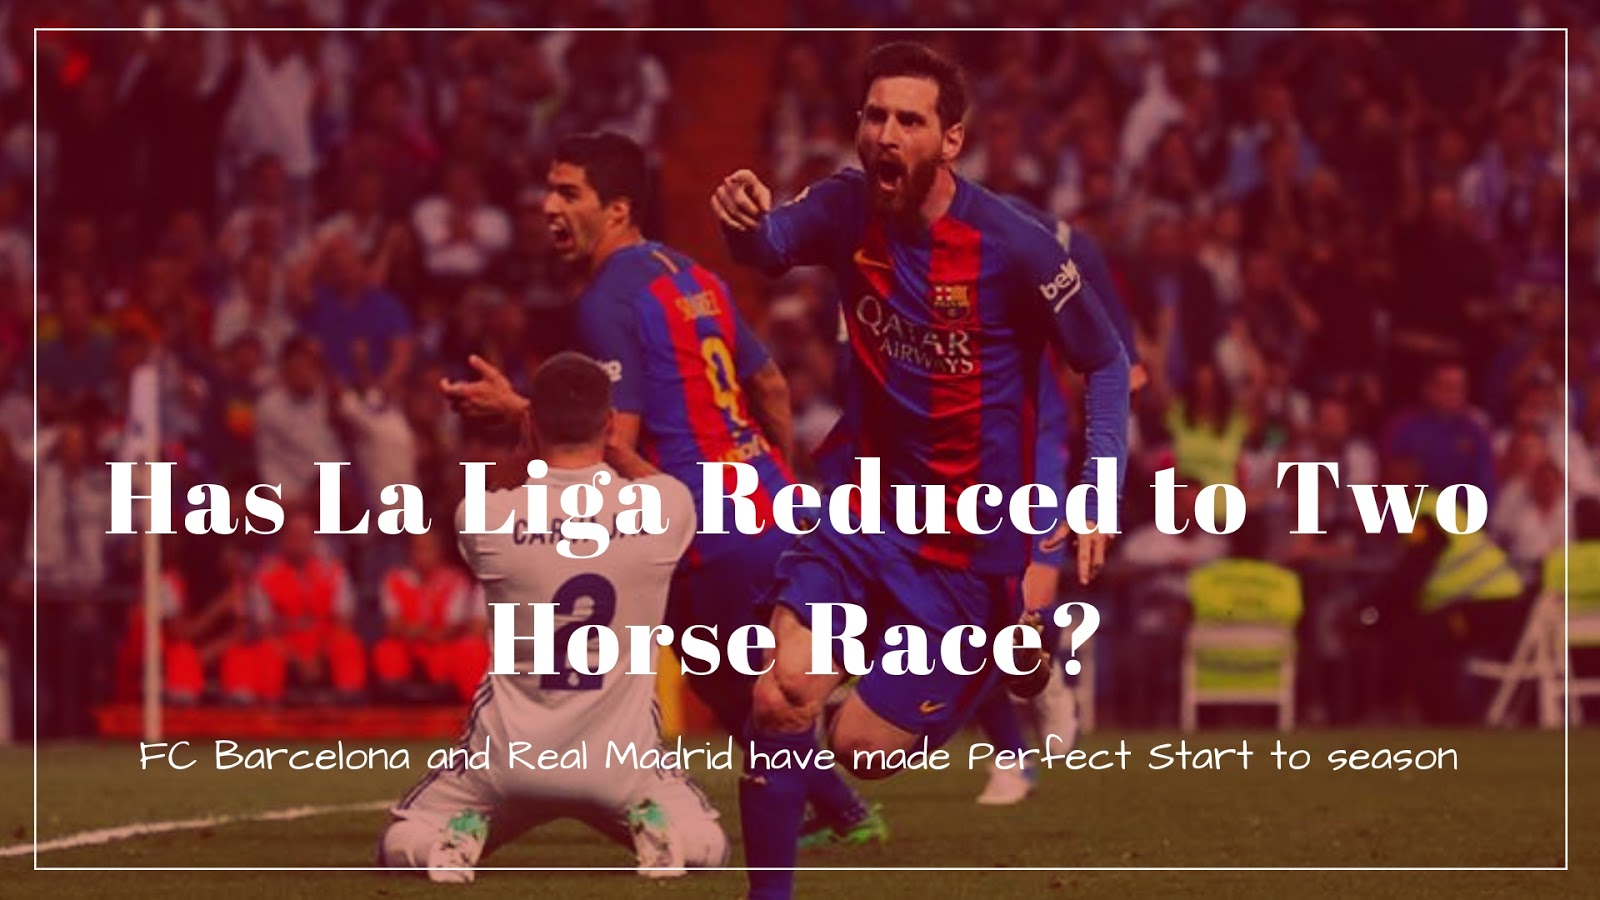 Has La Liga Reduced to Two Horse Race between Real Madrid and FC Barcelona